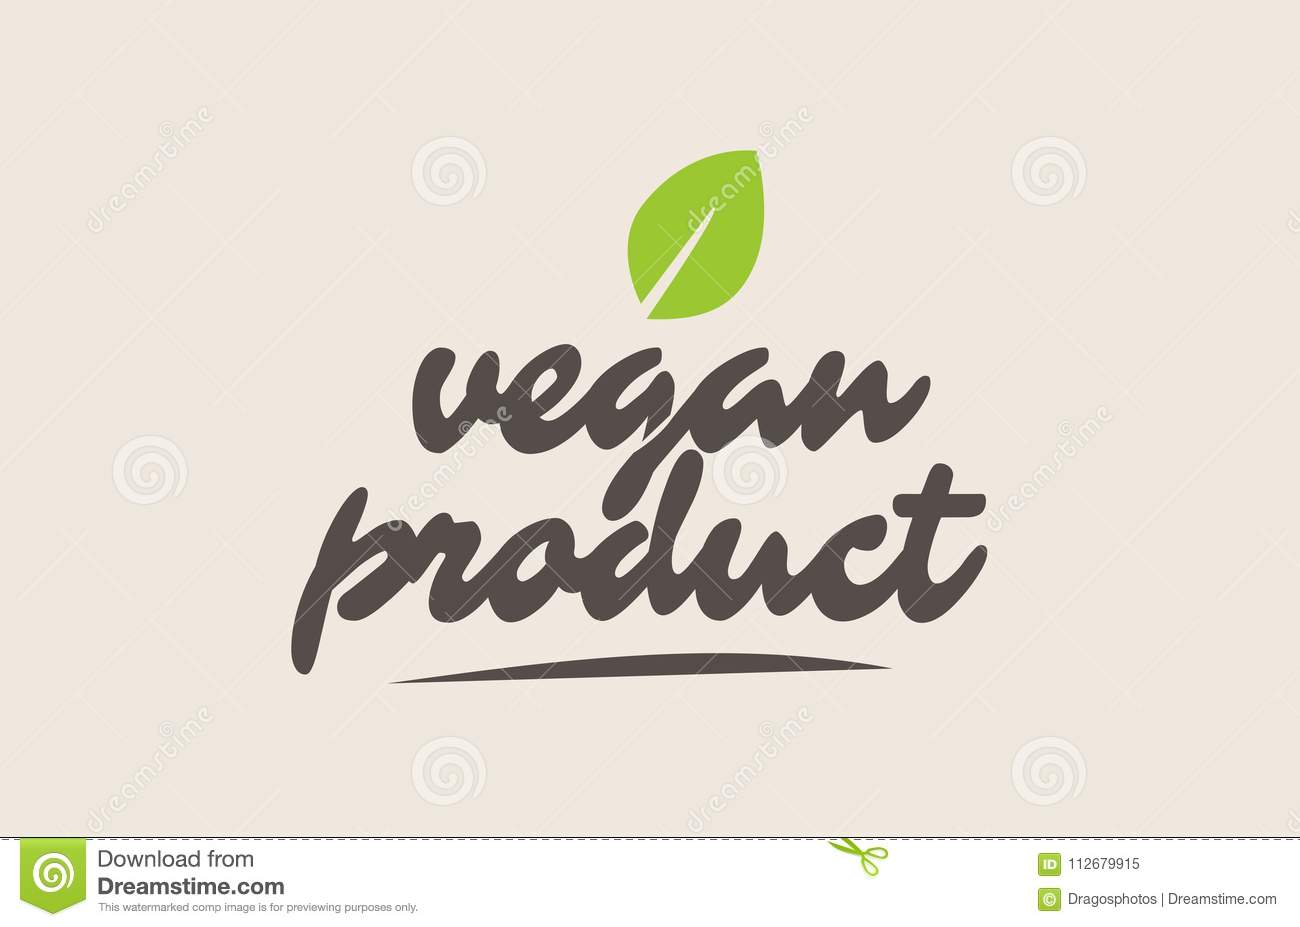 vegan product word or text with green leaf. Handwritten lettering